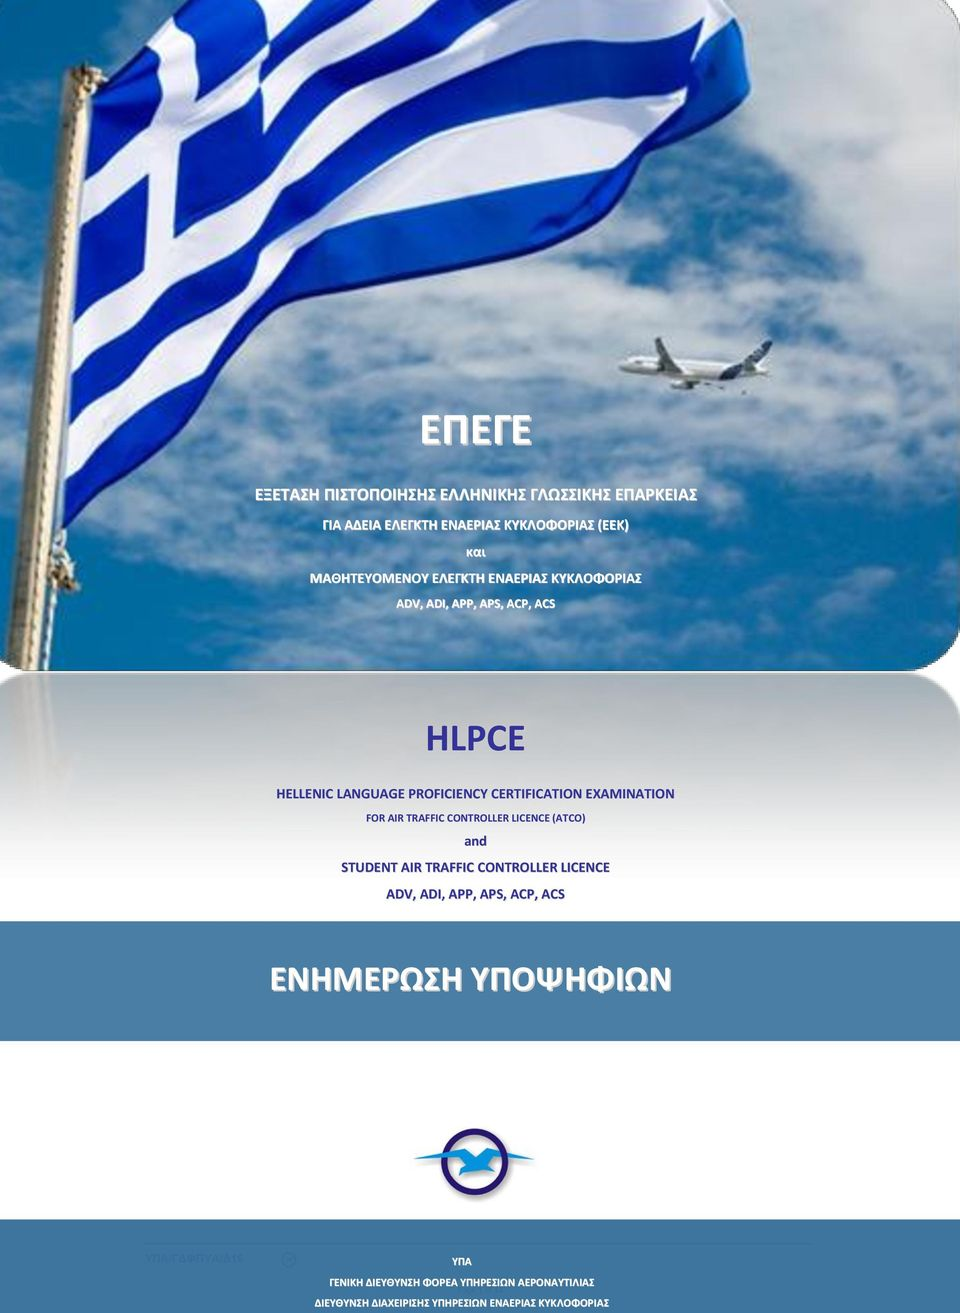 AIR TRAFFIC CONTROLLER LICENCE (ATCO) and STUDENT AIR TRAFFIC CONTROLLER LICENCE ADV, ADI, APP, APS, ACP, ACS ΕΝΗΜΕΡΩΣΗ